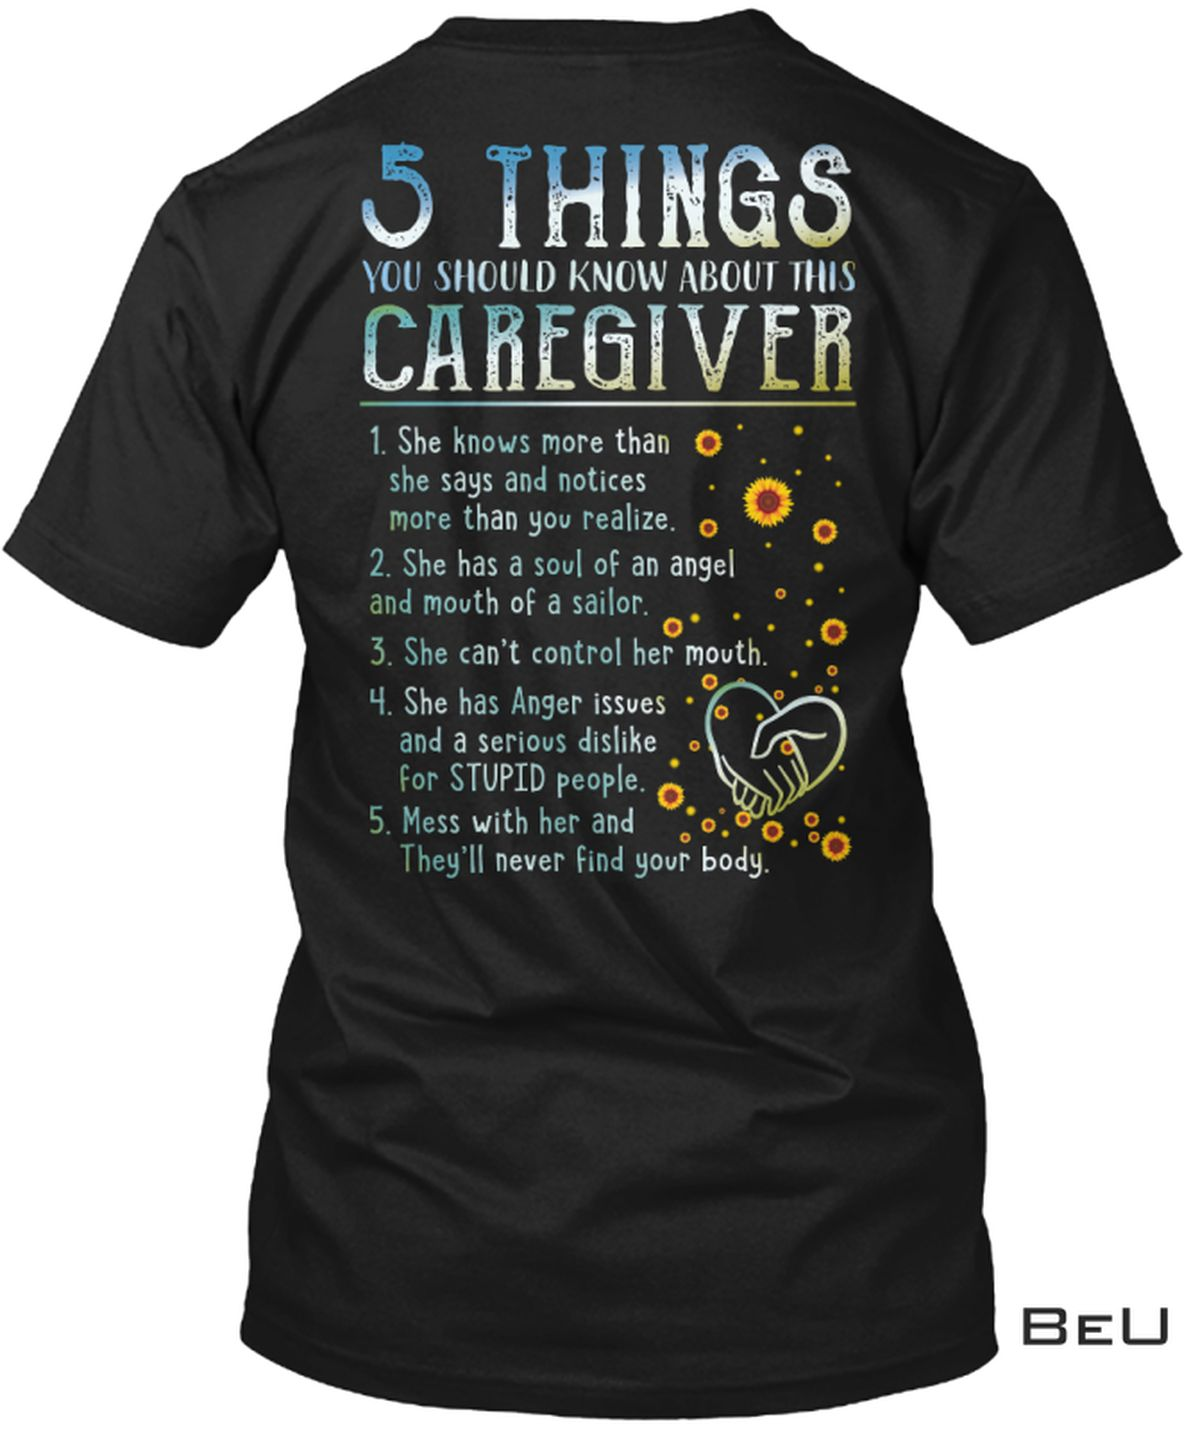 5 Things You Should Know About This Caregiver Shirt, Hoodie, Sweatshirt